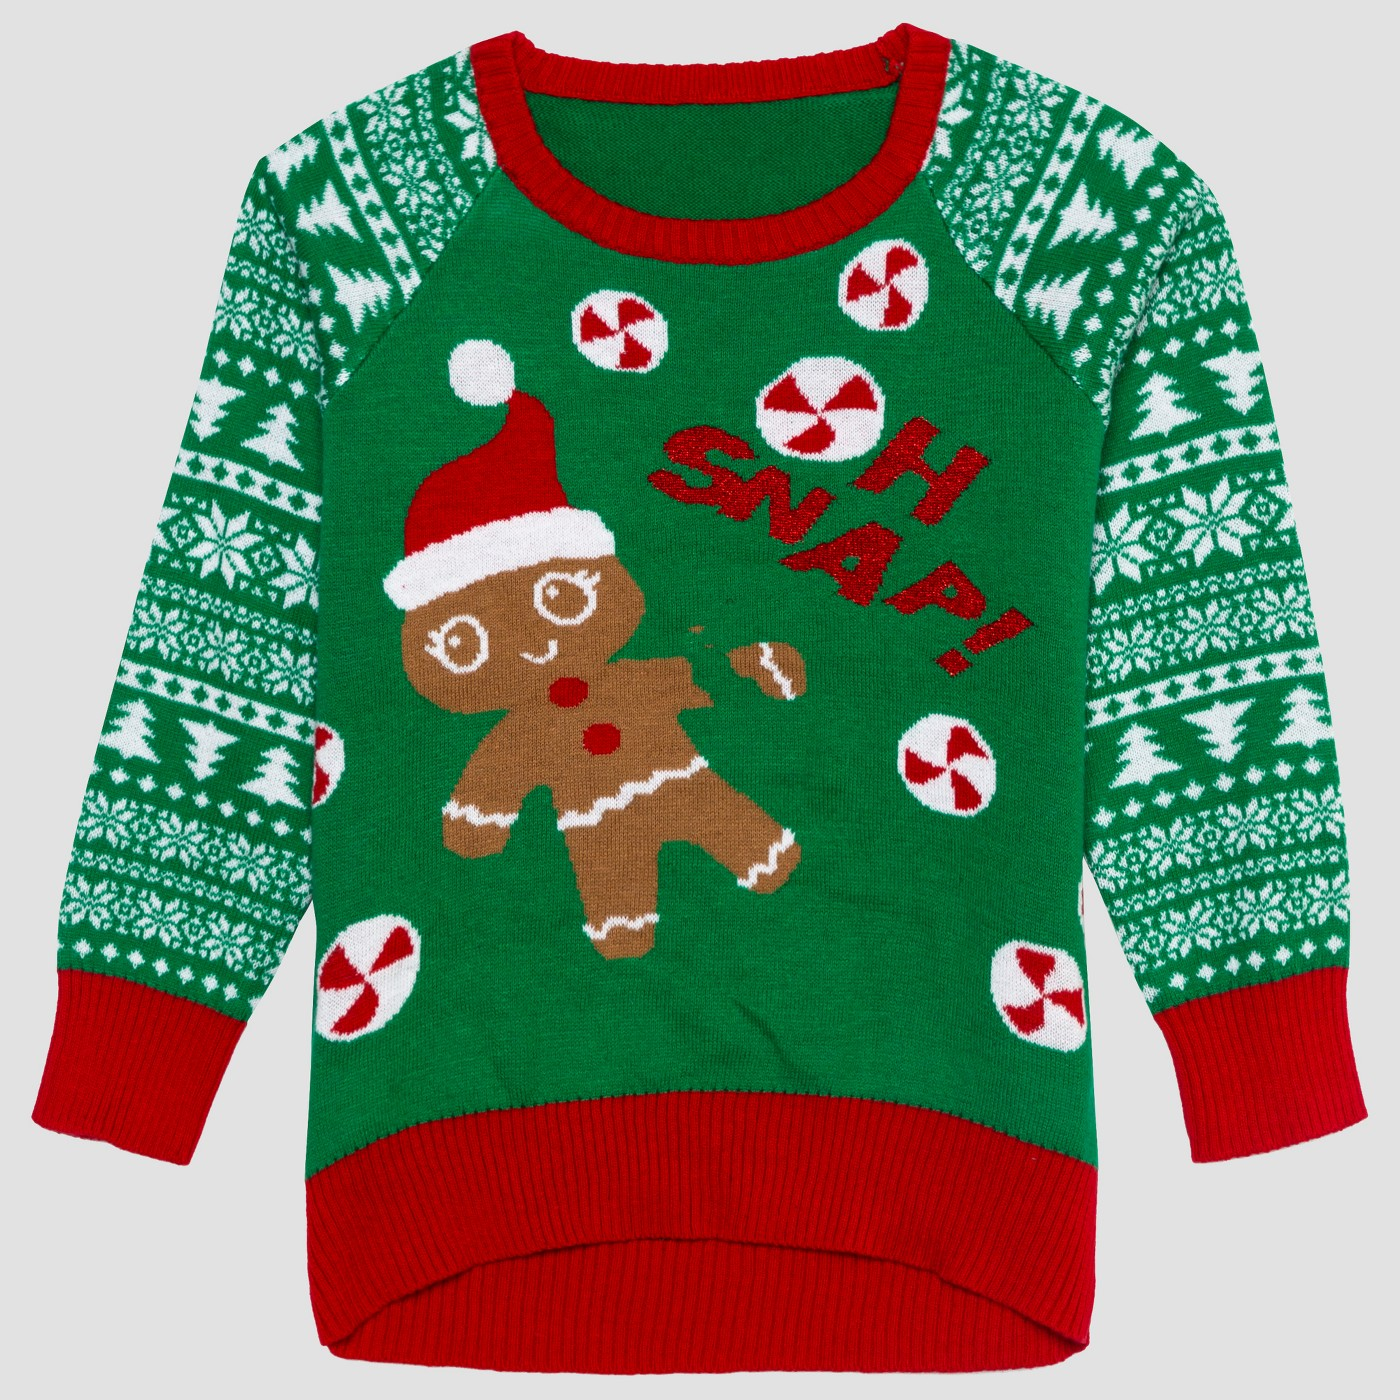 """Oh snap"" girls sweater - This is the updated gingerbread sweater for this year. It was a big hit last year! ($16.99)"